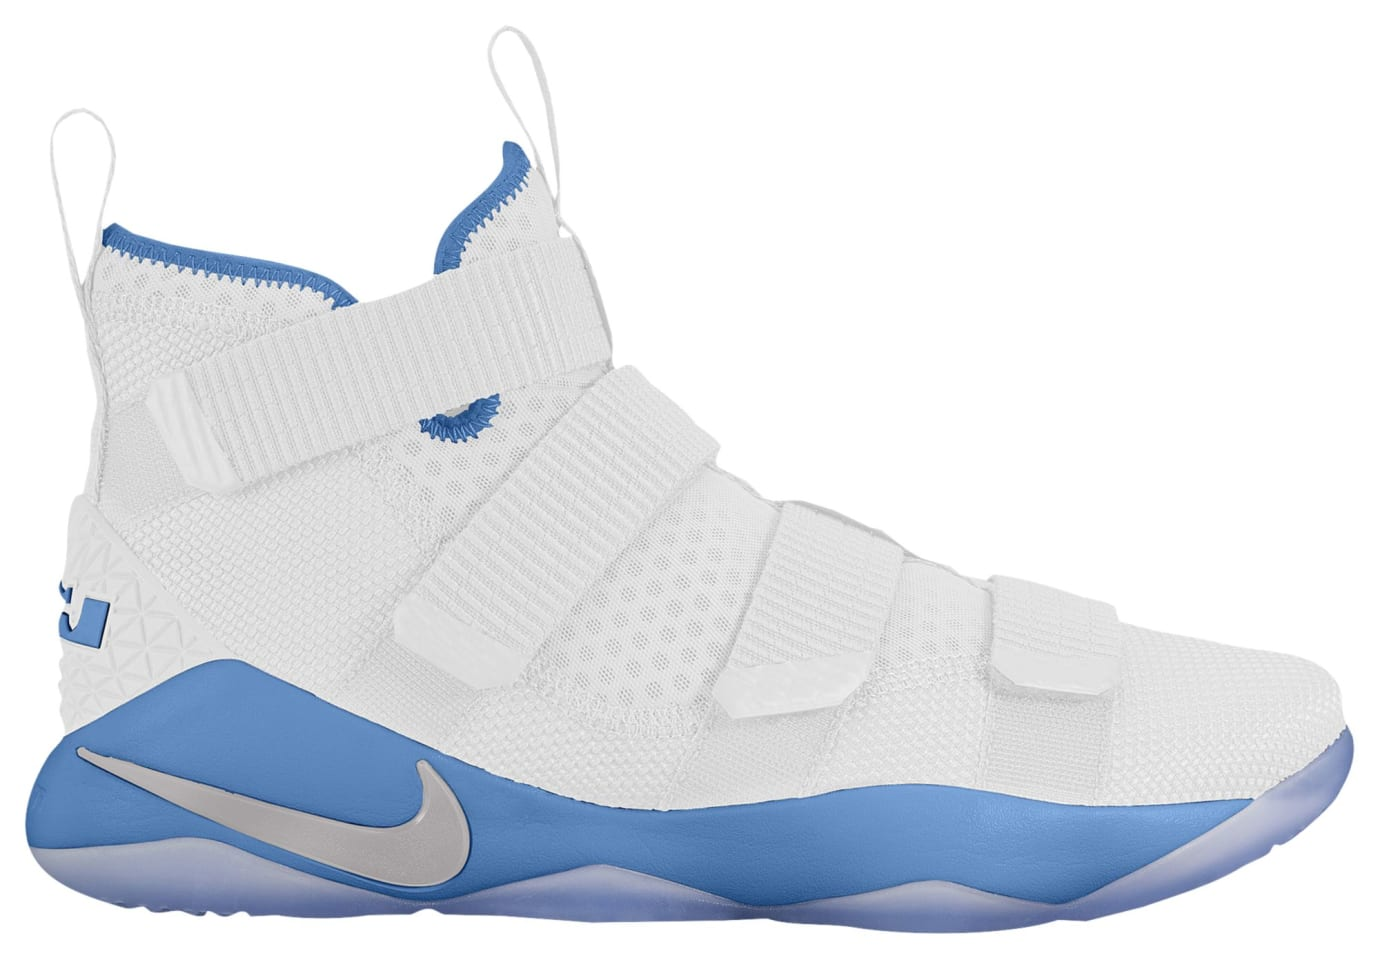 new style 79d90 3e9f3 Nike LeBron Soldier 11 Team Bank Colorways | Sole Collector